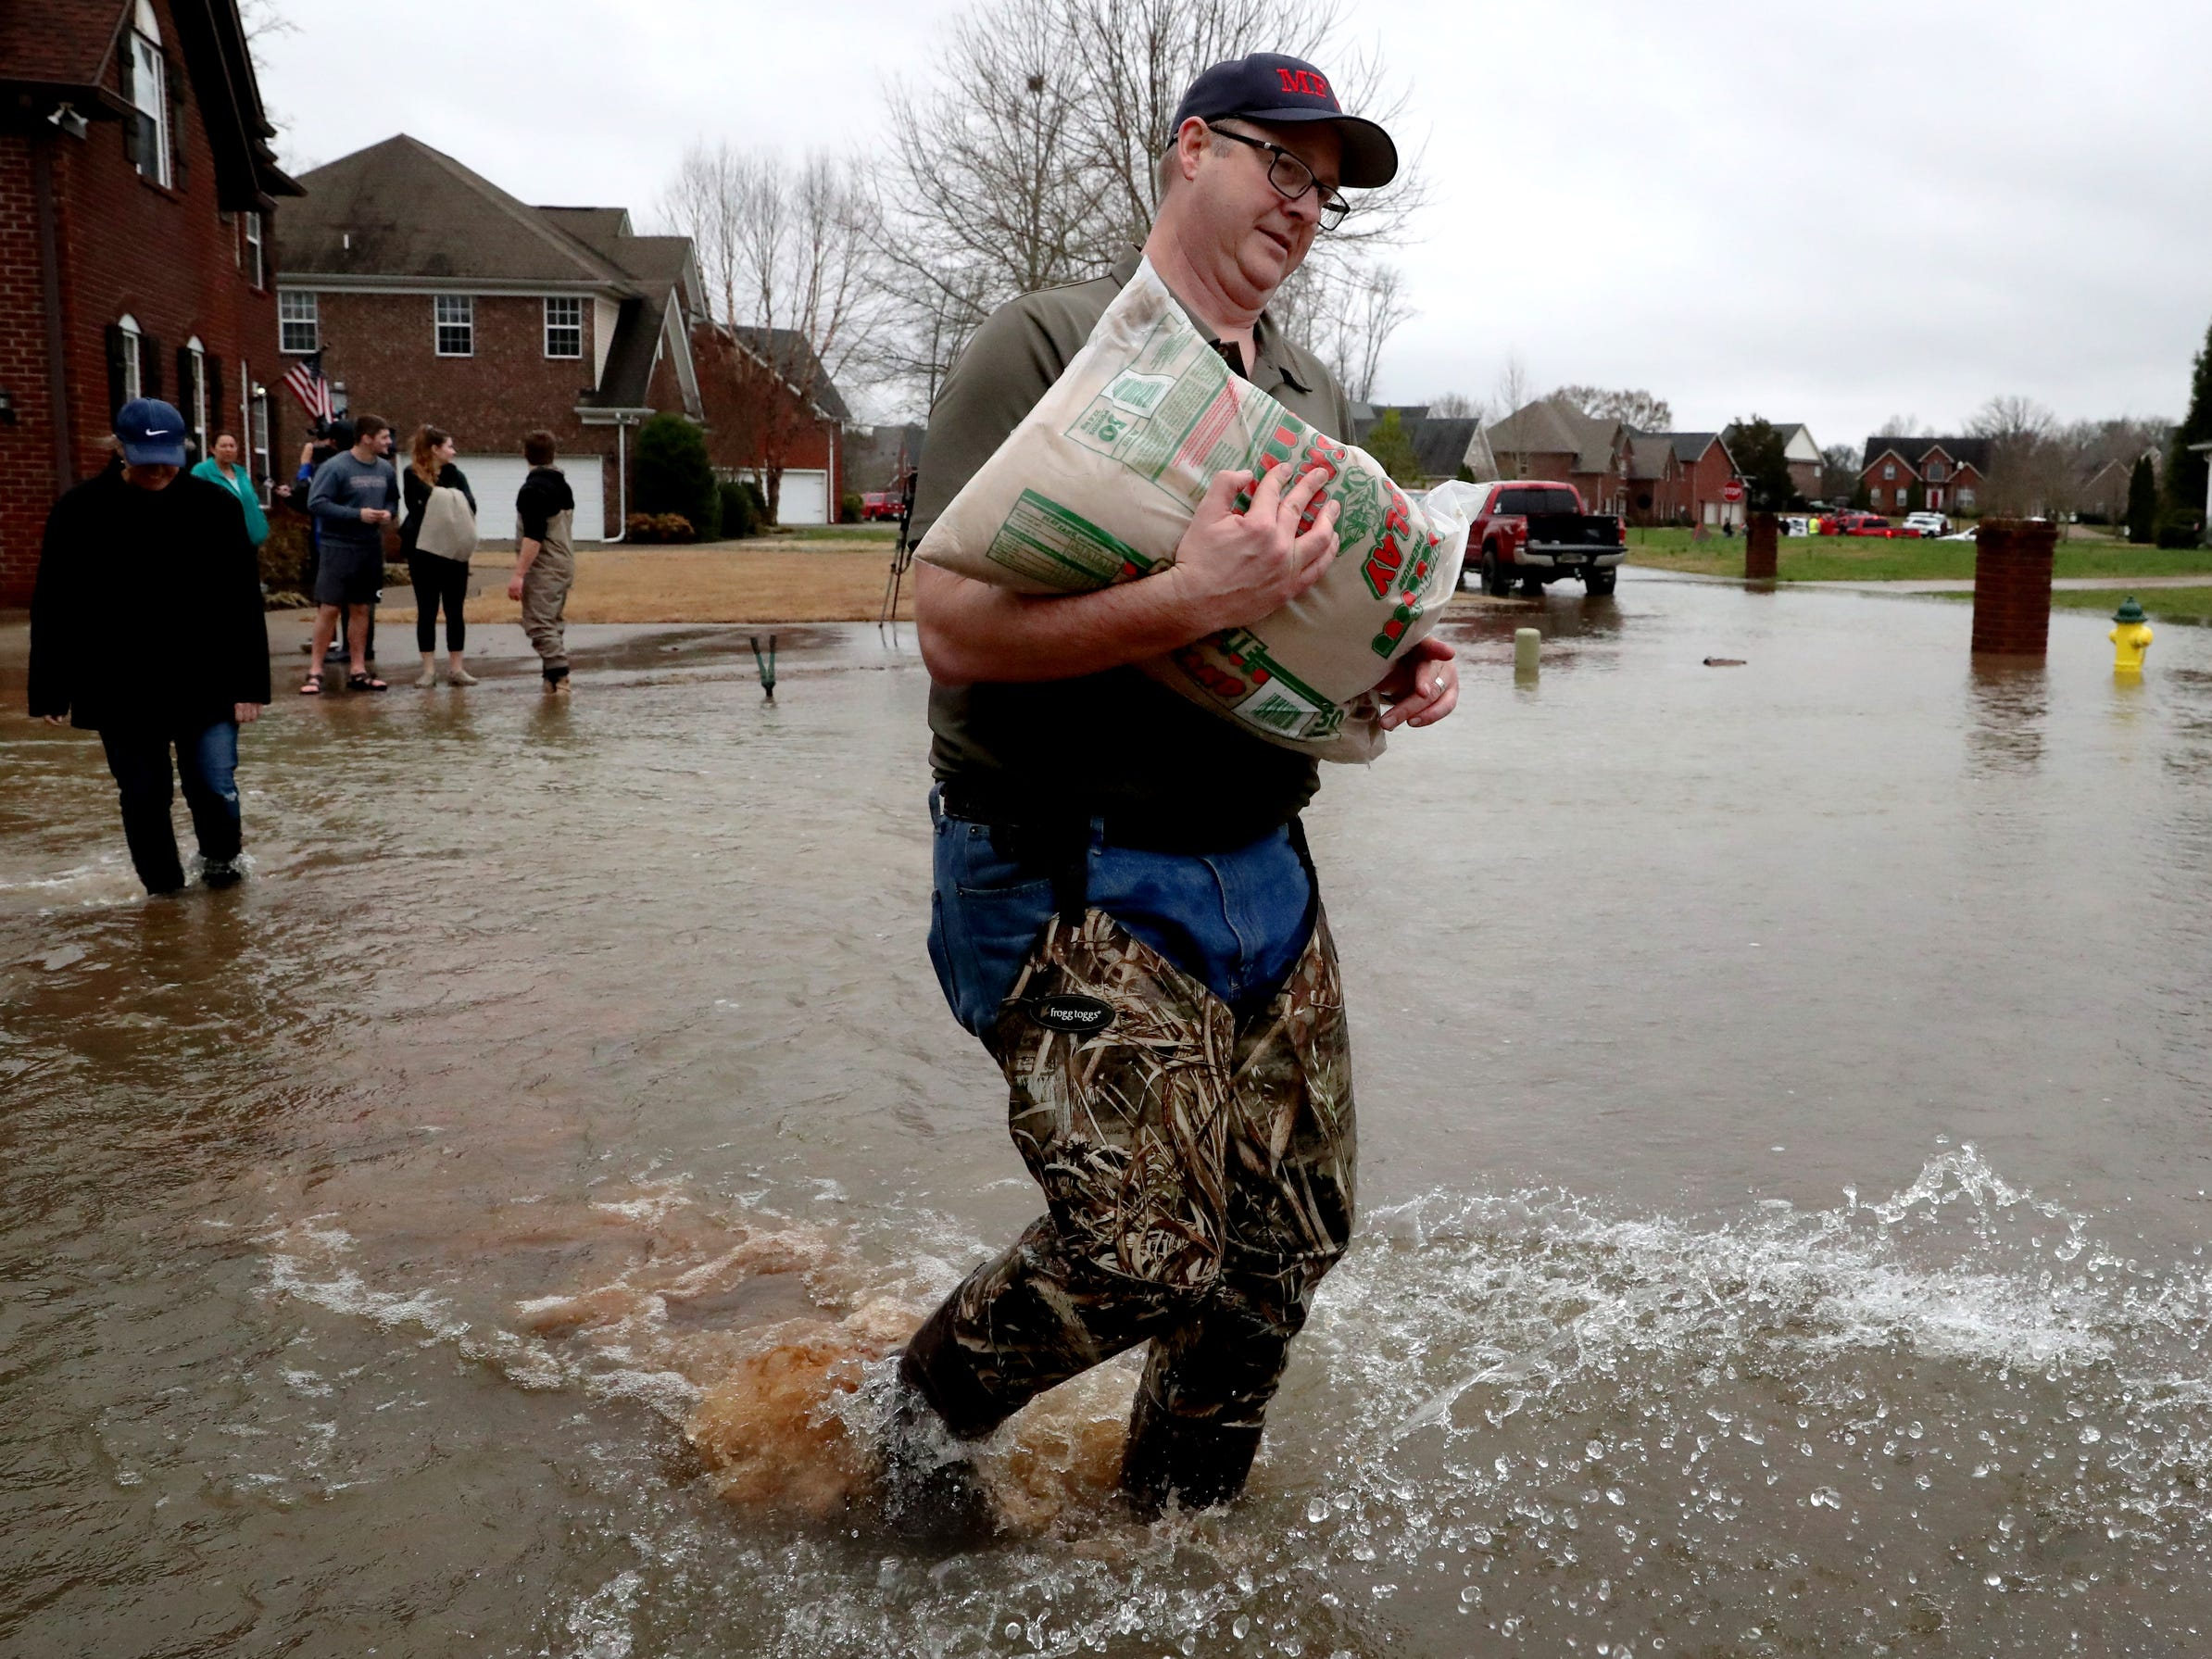 Charles Powell, a member of the City of Murfreesboro Fire Department, assists neighbors with sand bags during flooding in Murfreesboro on Saturday, Feb. 23, 2019.